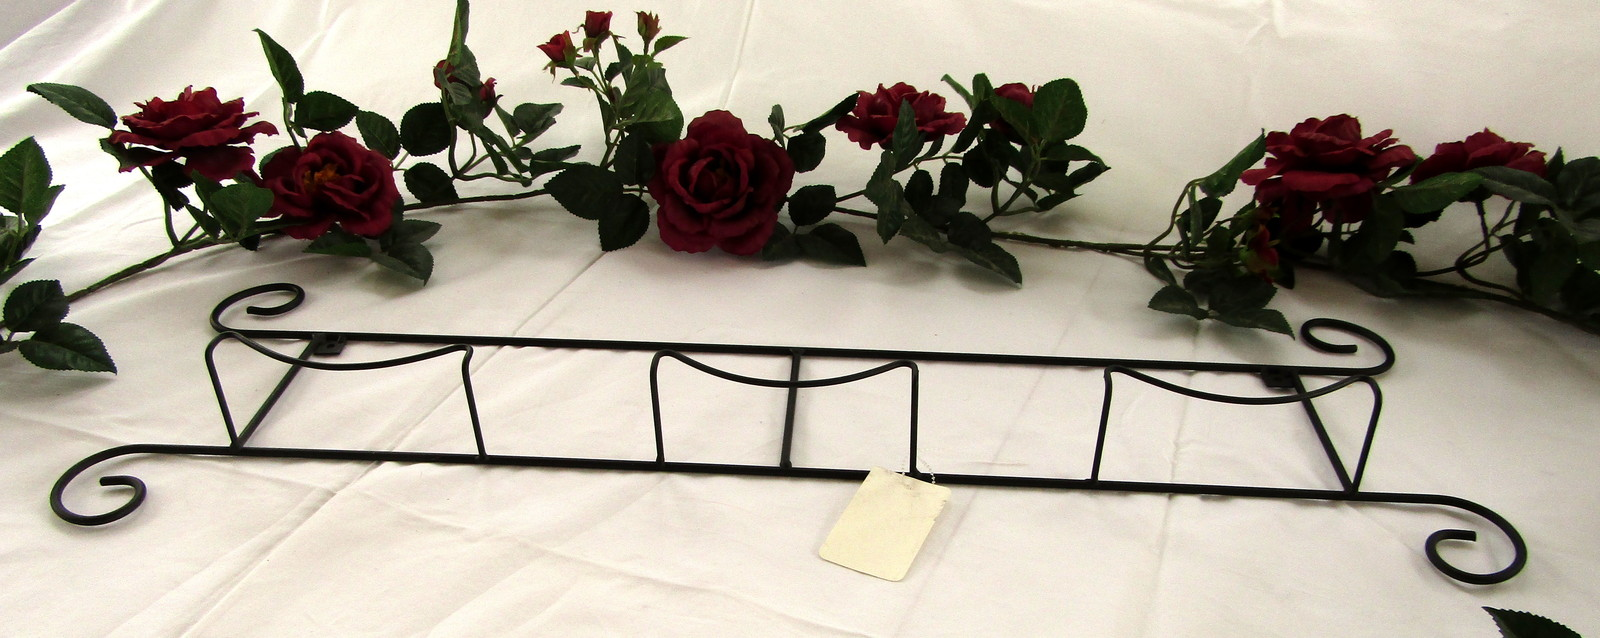 Horizontal 3 Plate Holder for Your Collector Plates